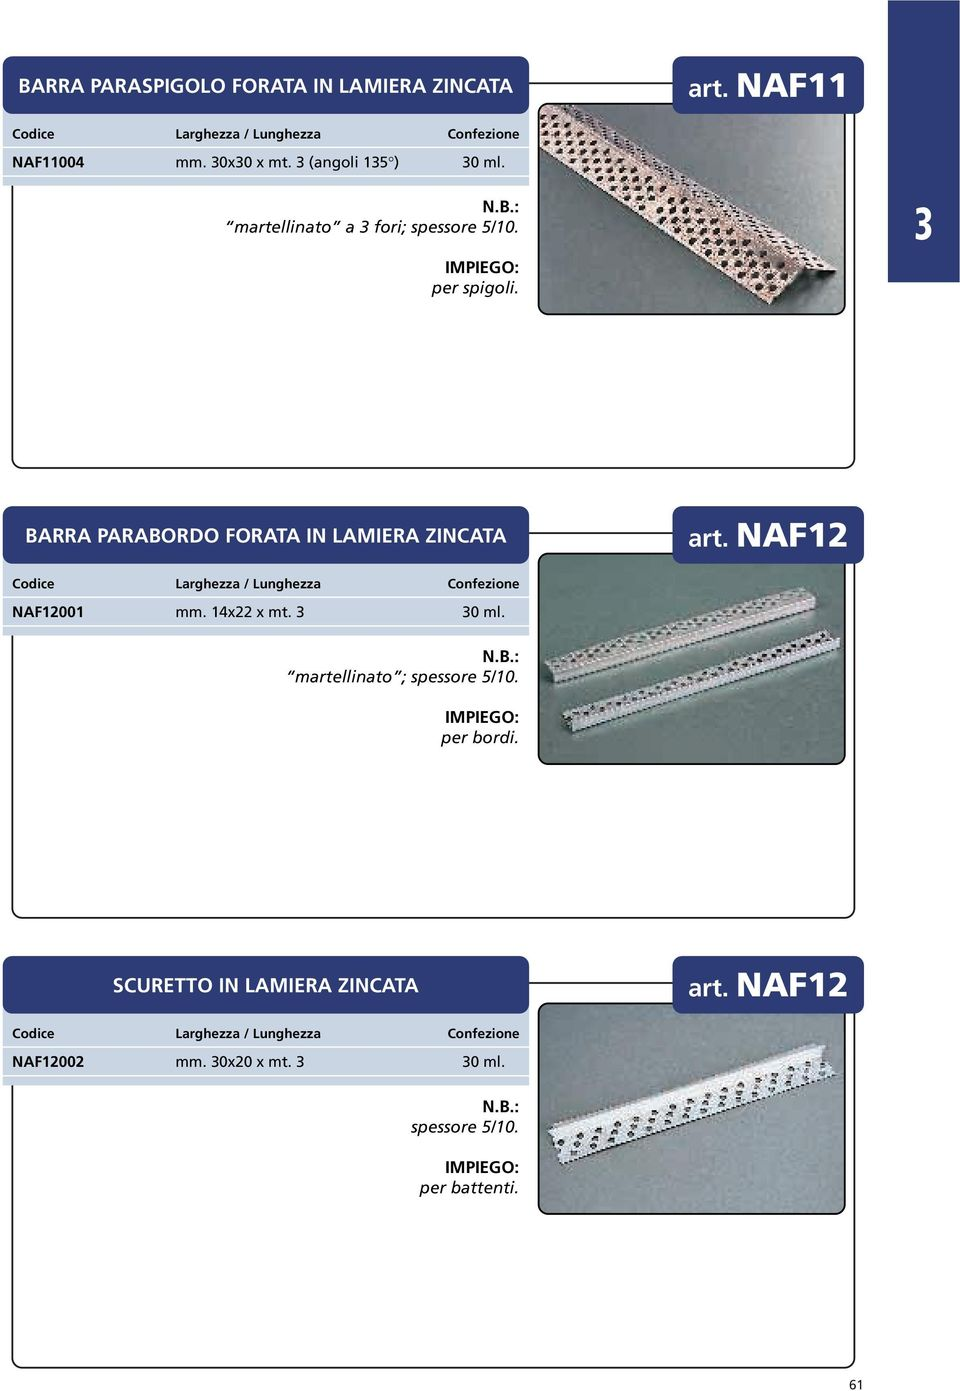 BARRA PARABORDO FORATA IN LAMIERA ZINCATA art. NAF12 NAF12001 mm. 14x22 x mt. 0 ml.